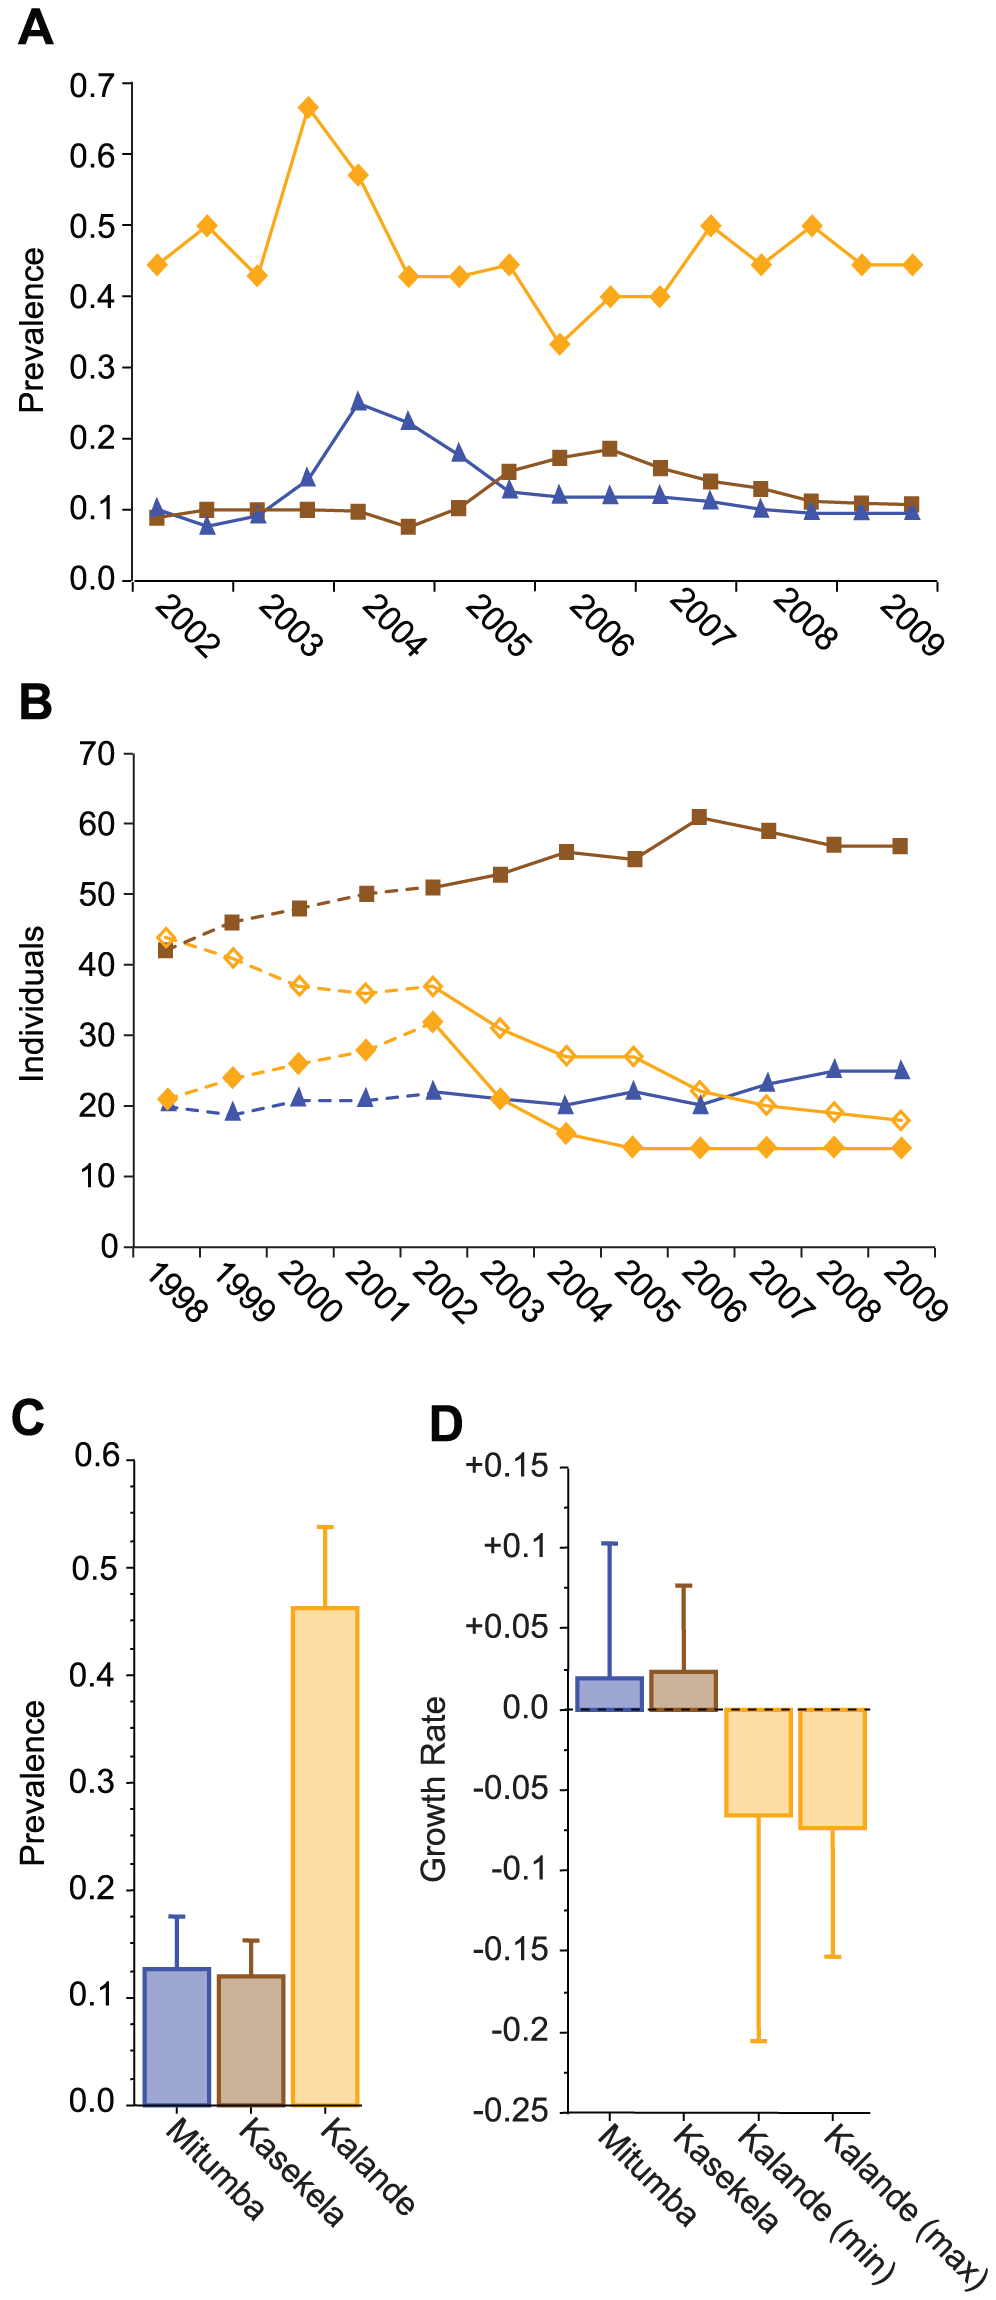 SIVcpz prevalence, population sizes, and median population growth rates for the Gombe communities.